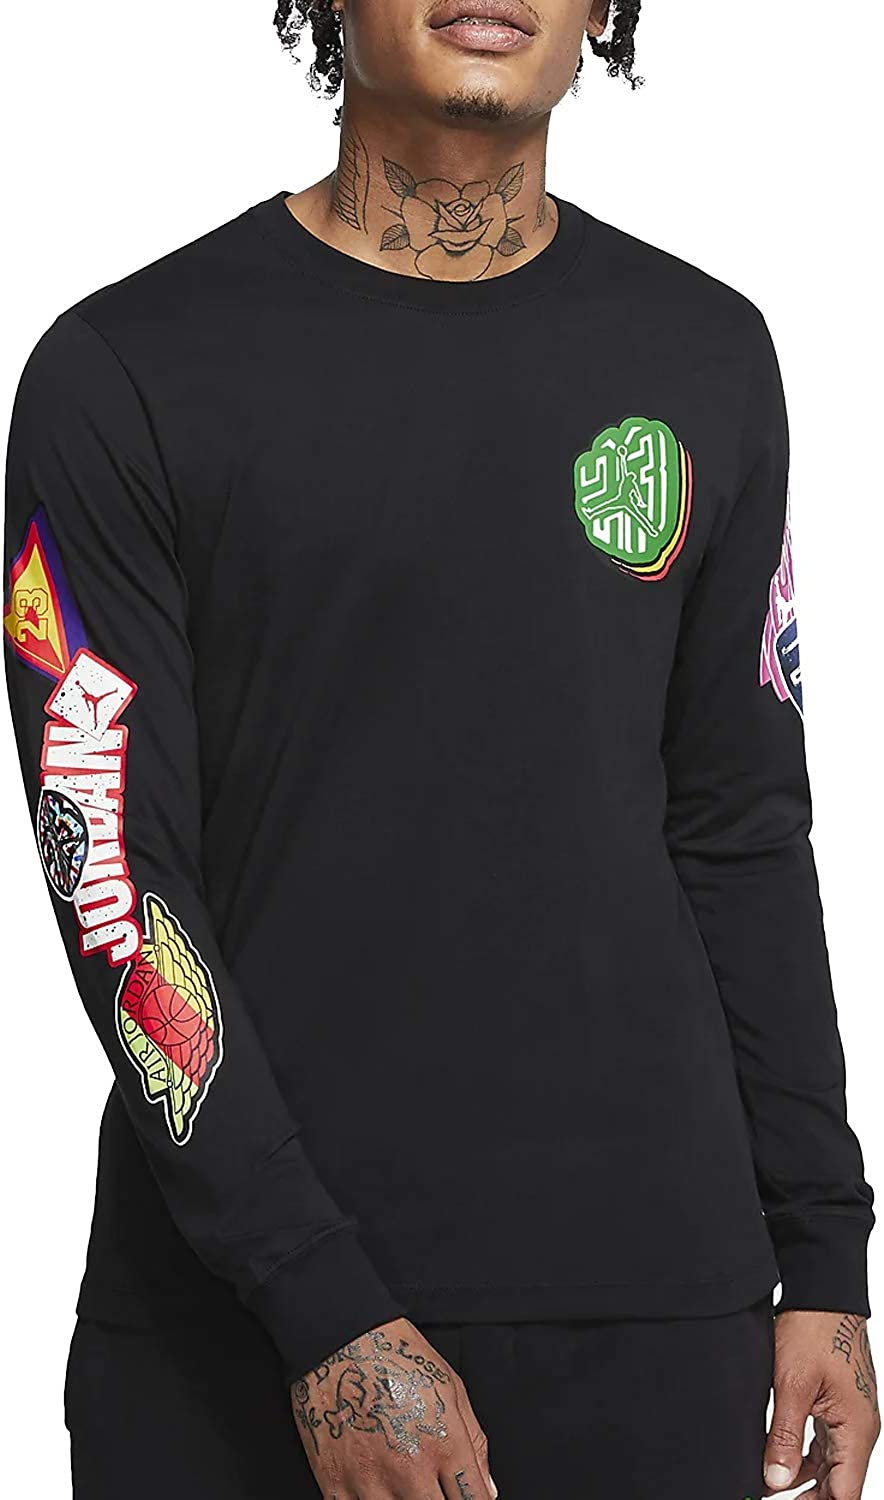 Nike Challenge the lowest price Repeat Stick At the price of surprise Men's Black T-Shirt CD5513-010 > <br